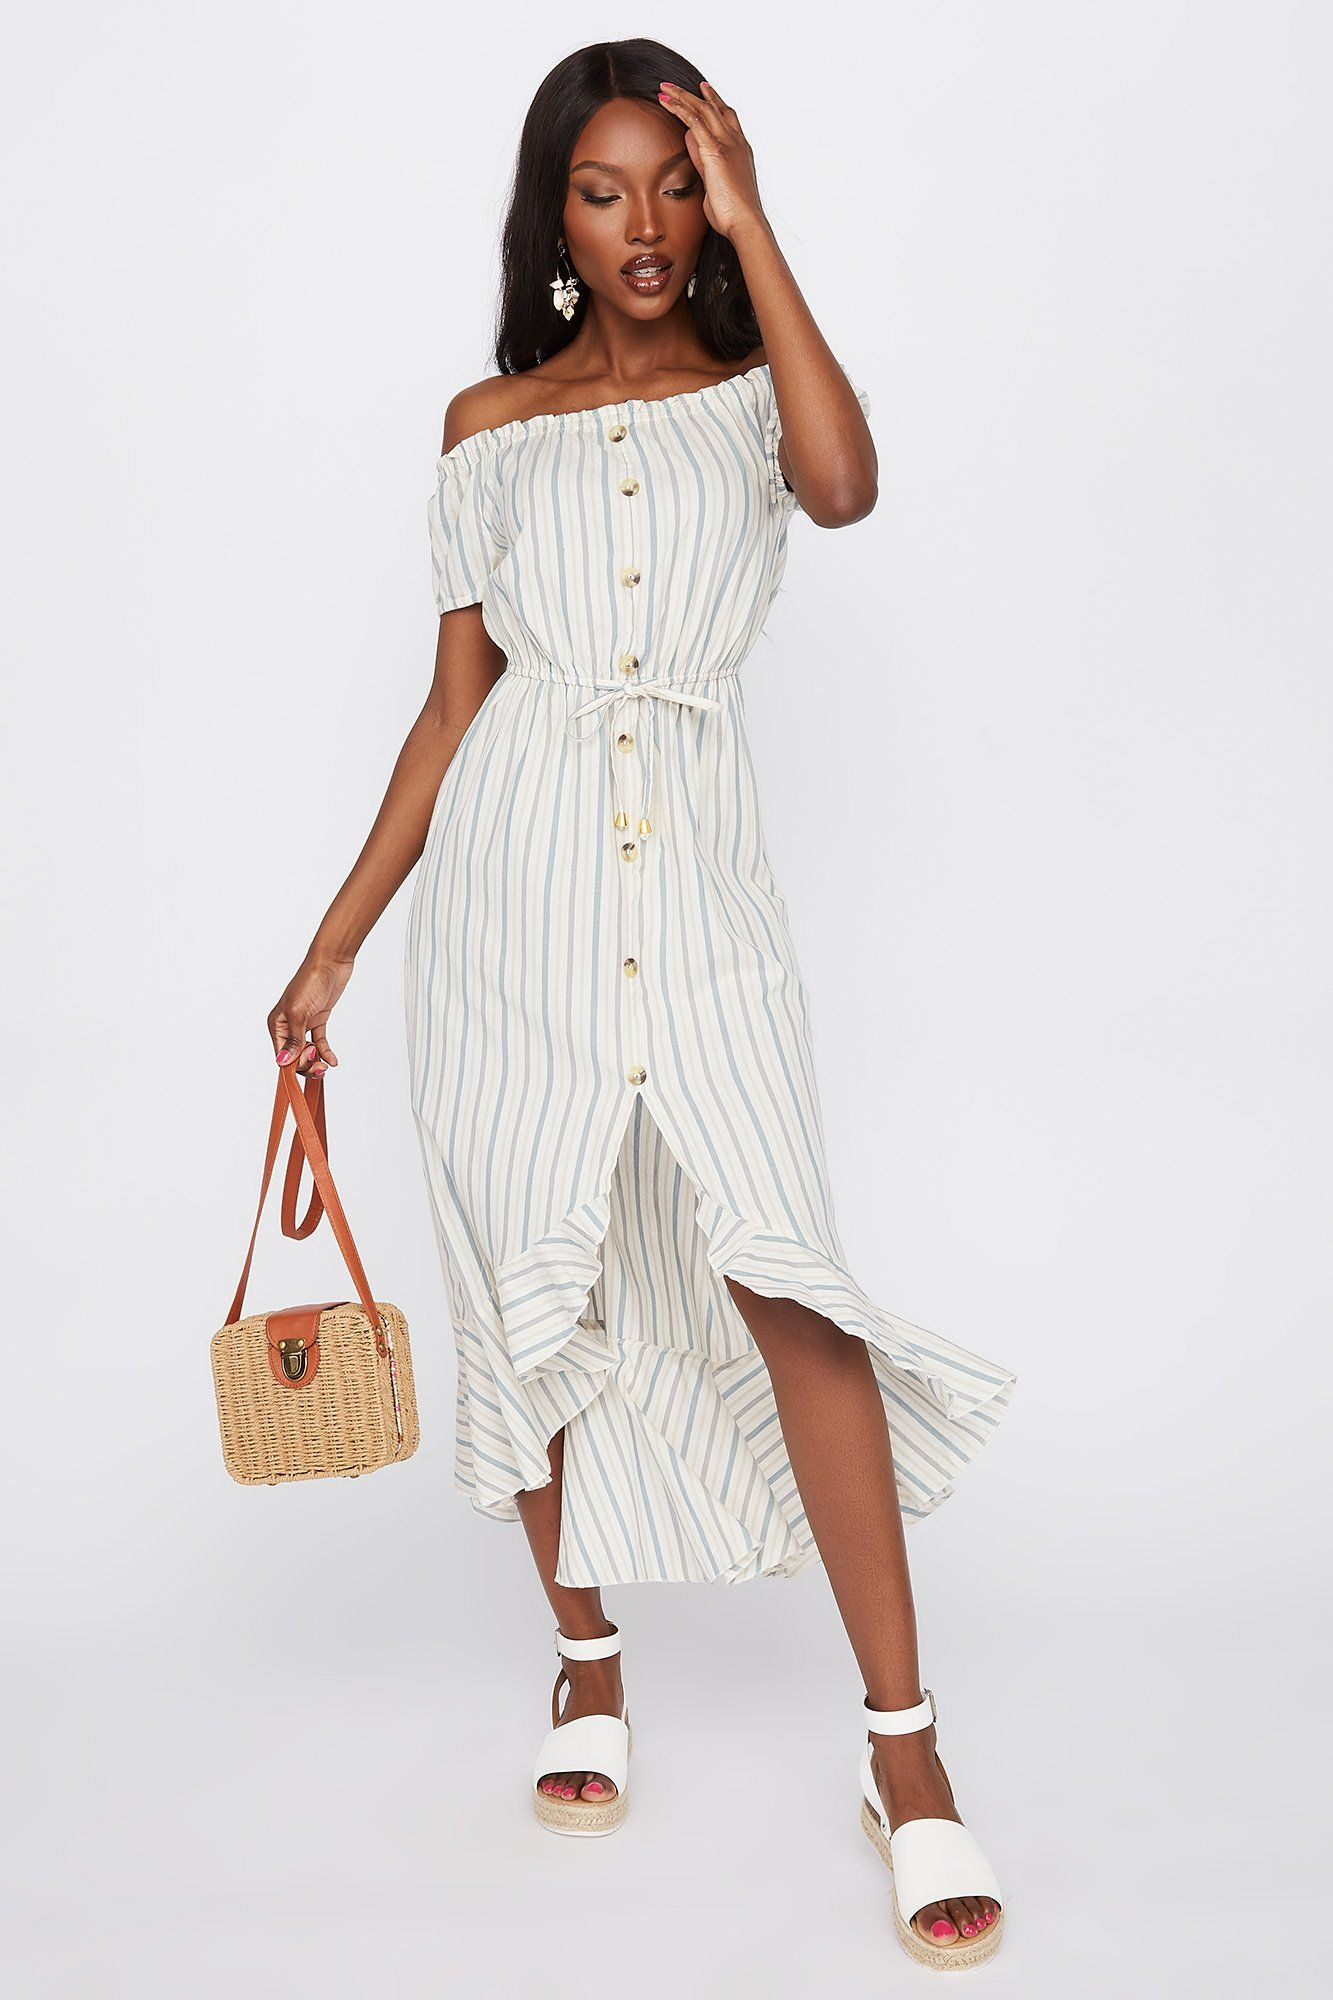 Striped Off The Shoulder Button Front High Low Dress Charlotte Russe High Low Dress Dresses Womens Dresses [ 2000 x 1333 Pixel ]